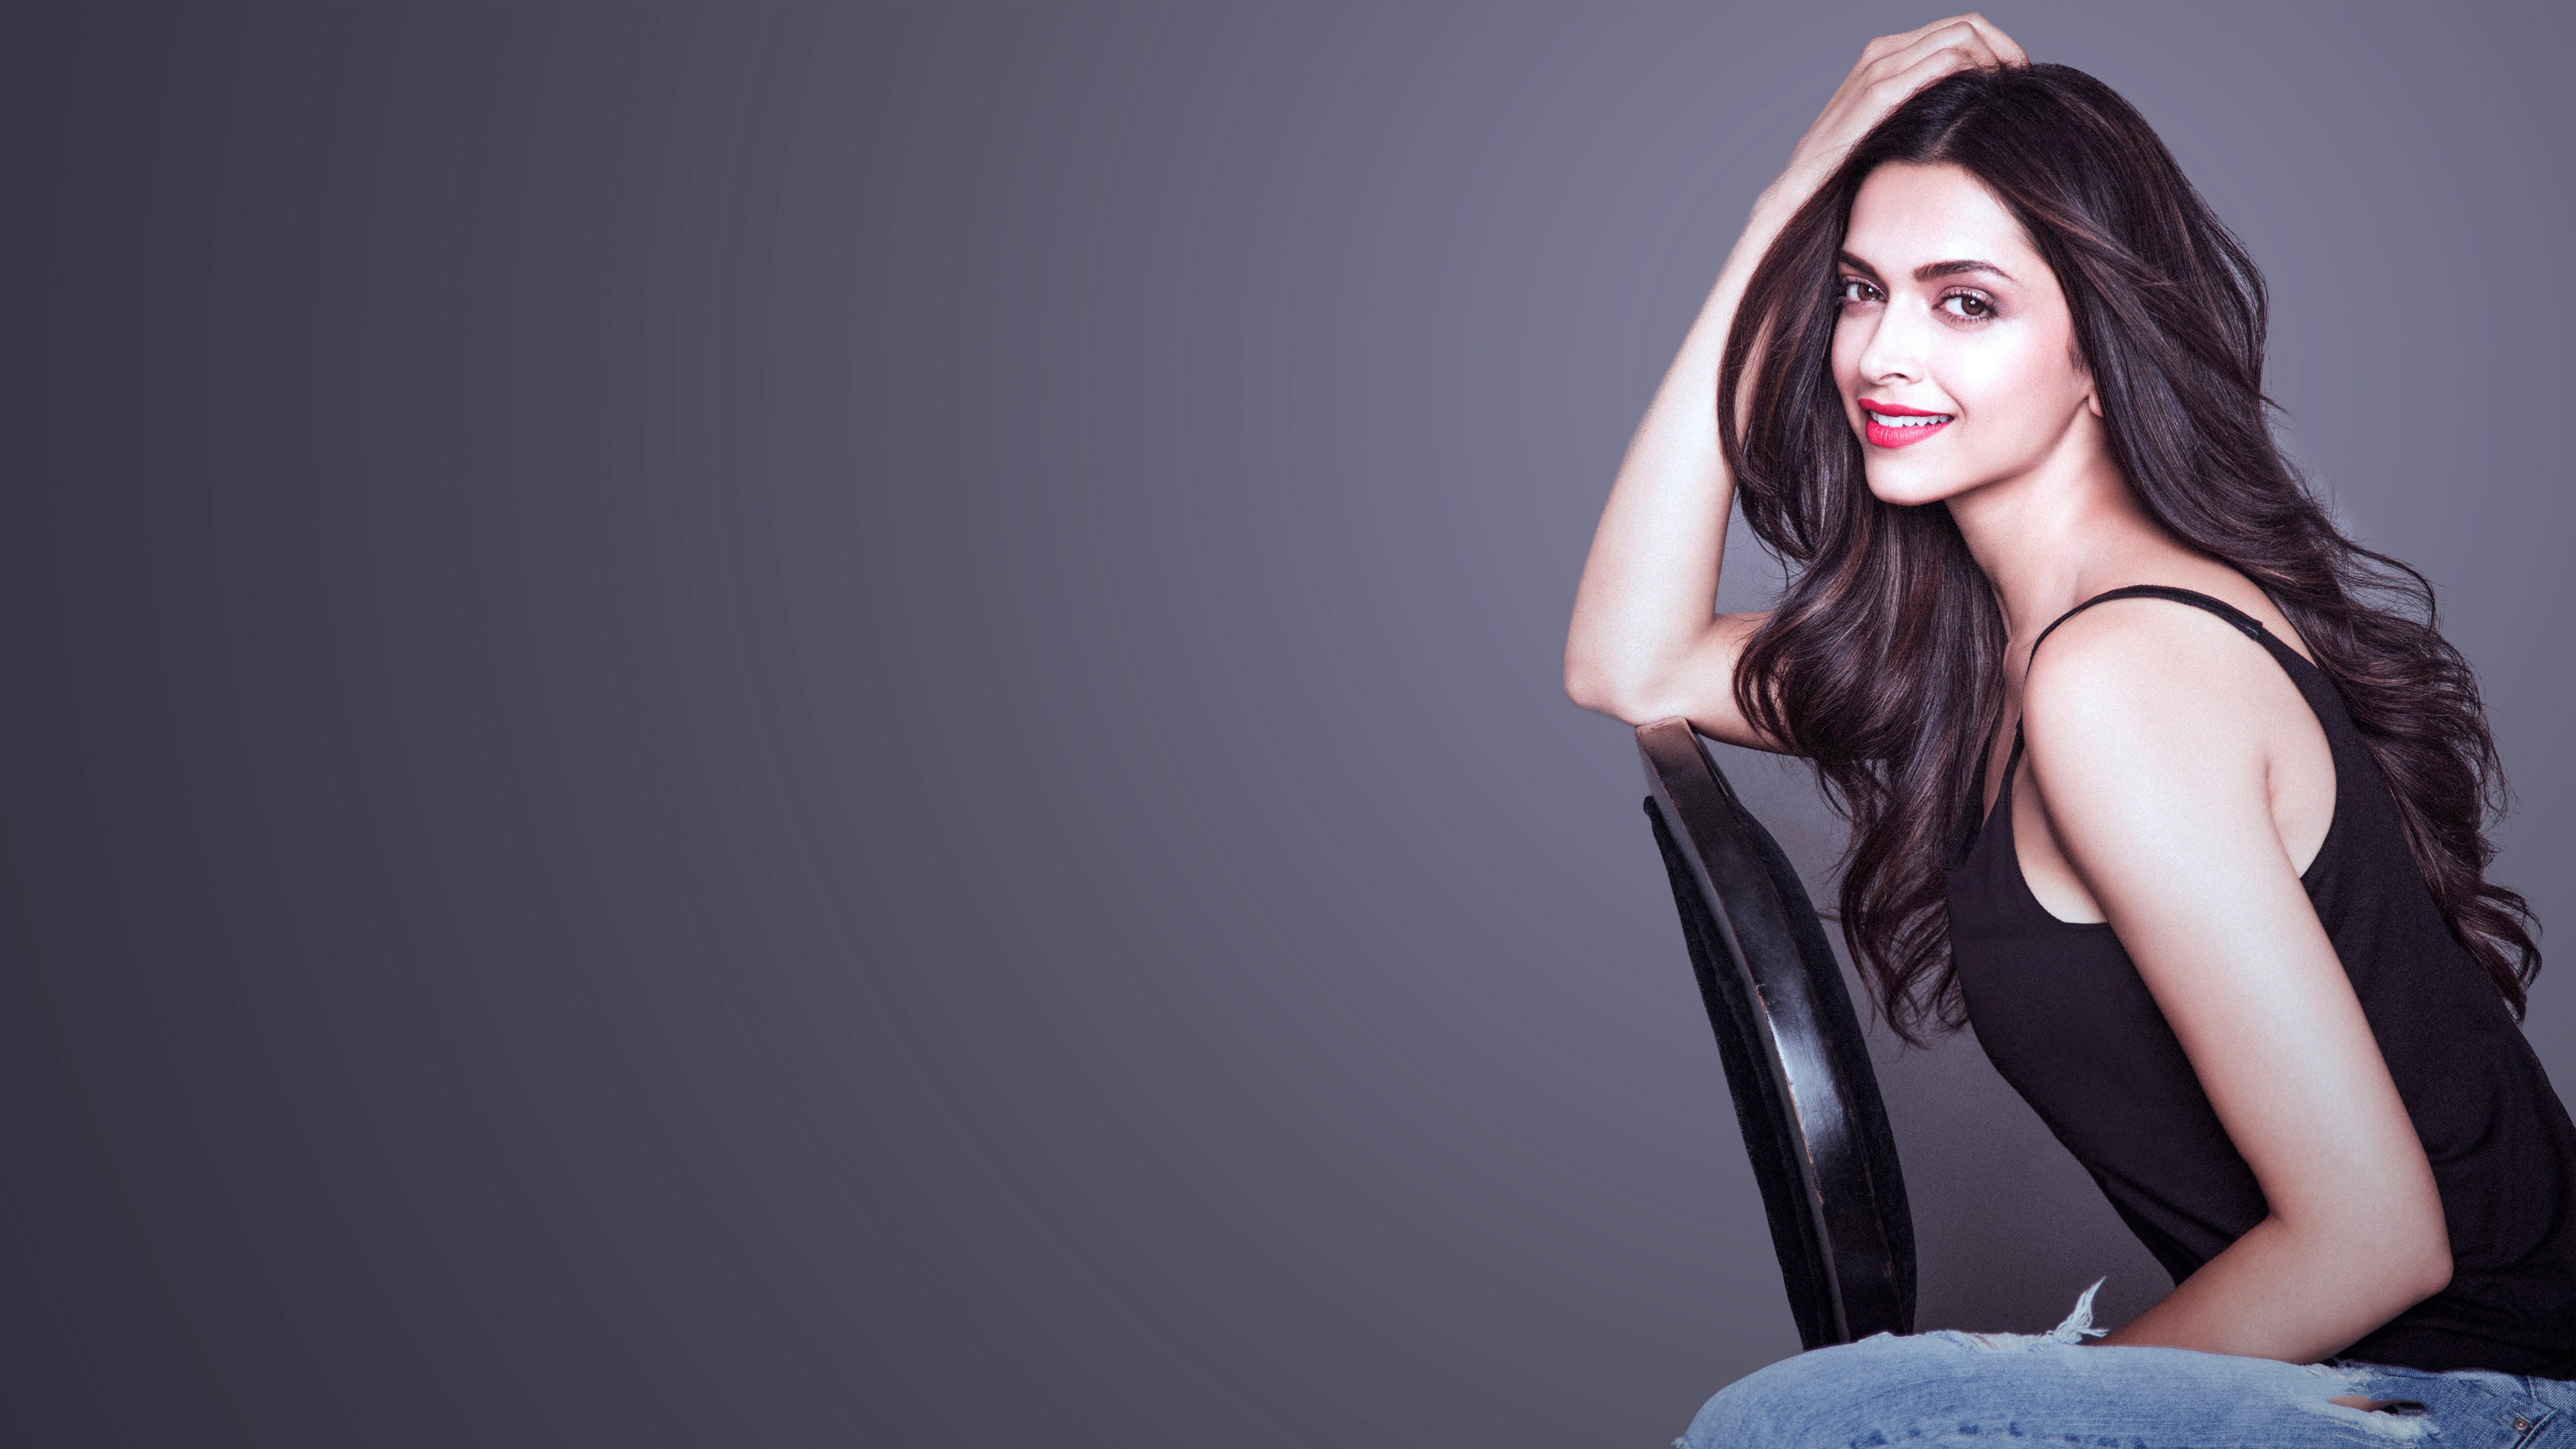 Free Deepika Padukone high quality wallpaper ID:334344 for uhd 4k PC